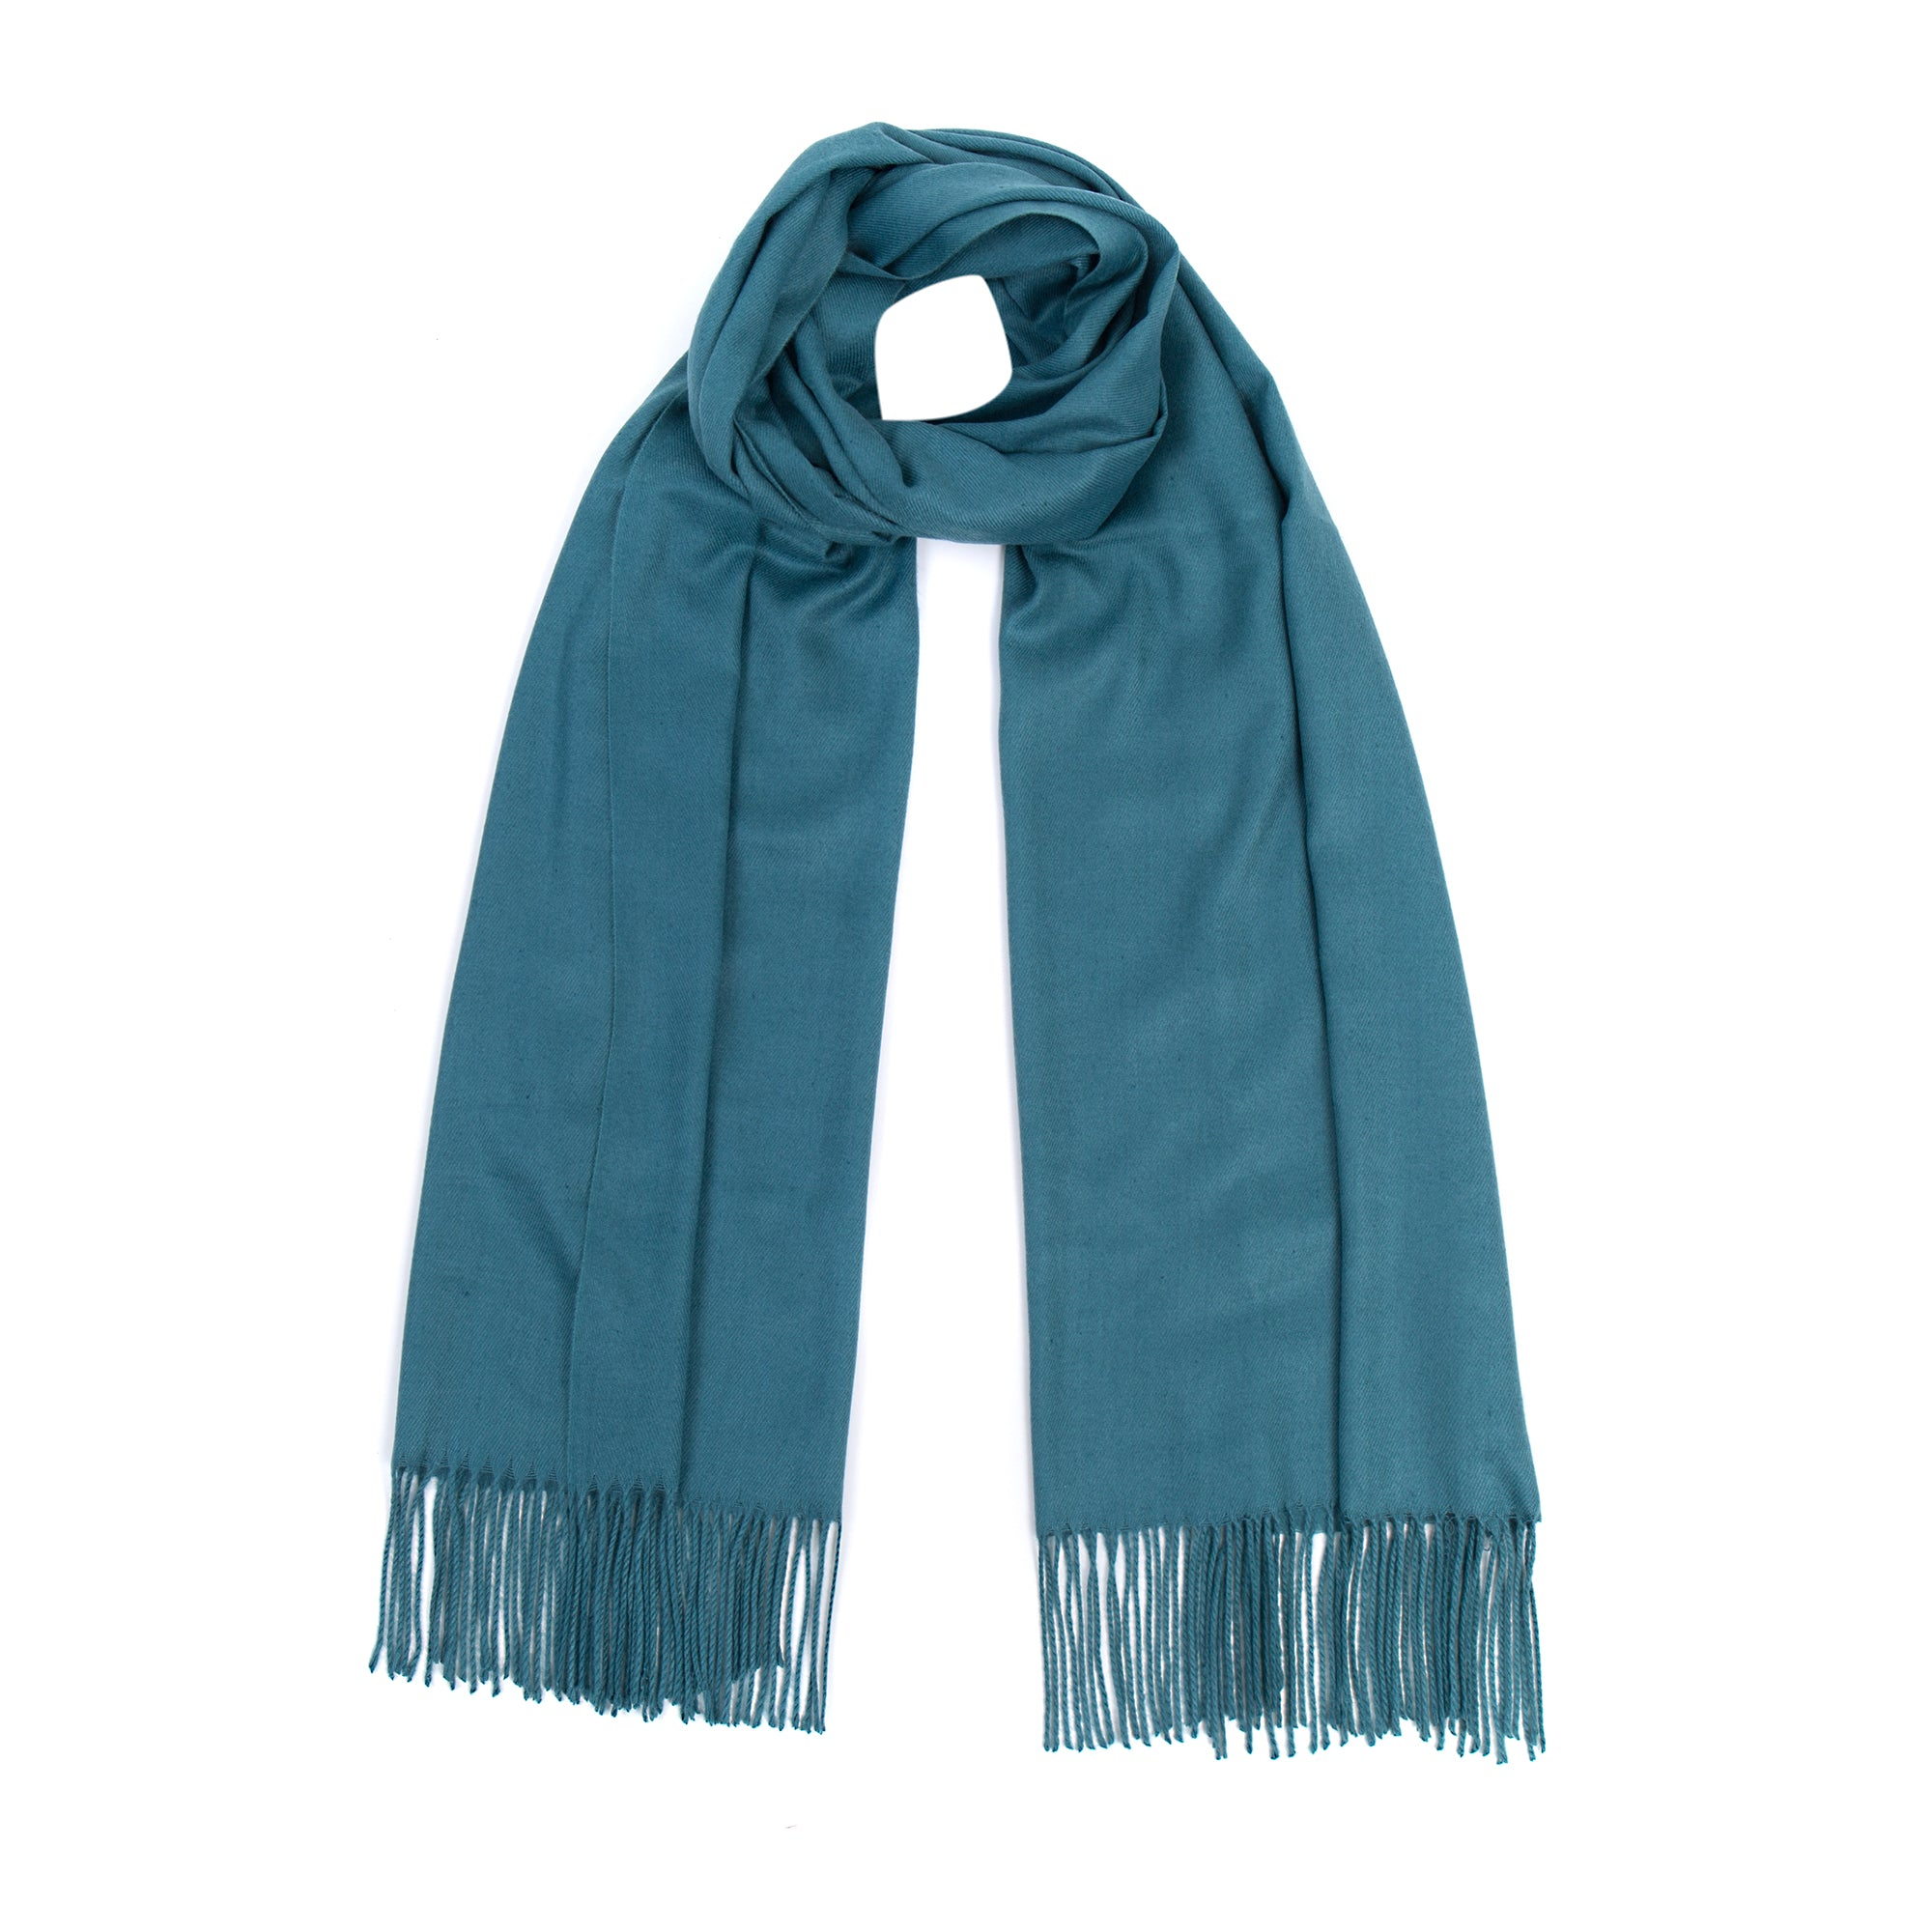 Luxury Super Soft Pashmina Scarf - Teal